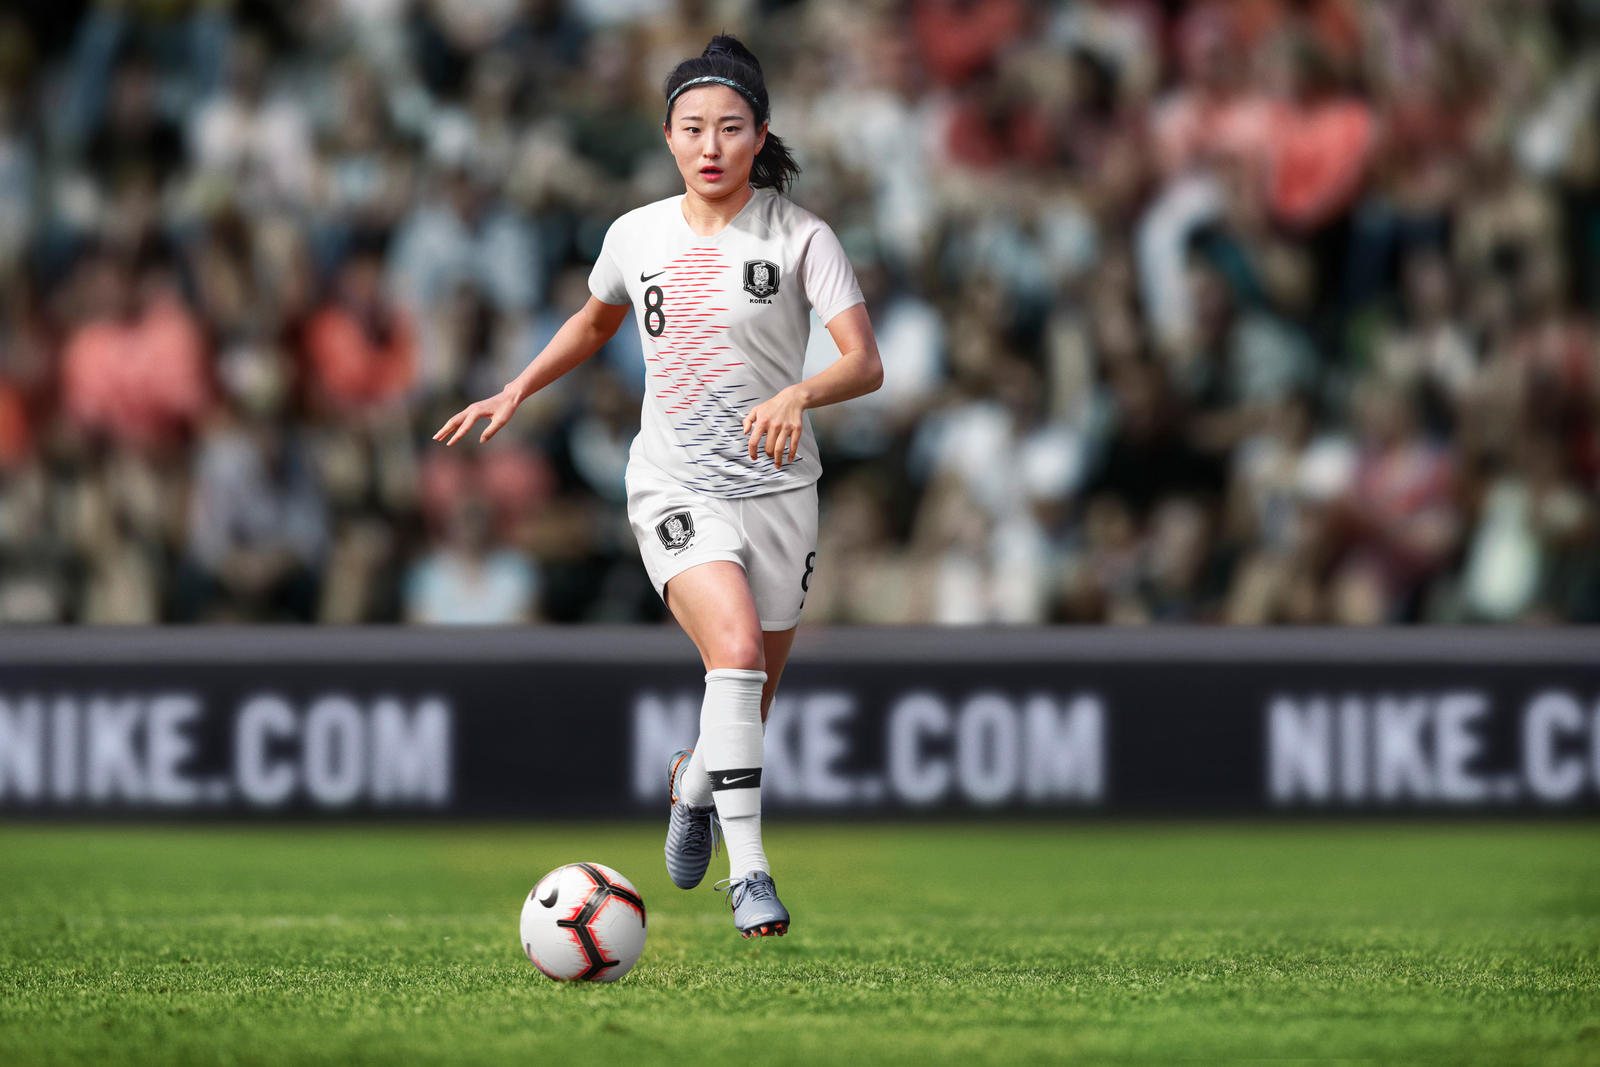 south-korea-national-team-kit-2019-performance-001_85994.jpg